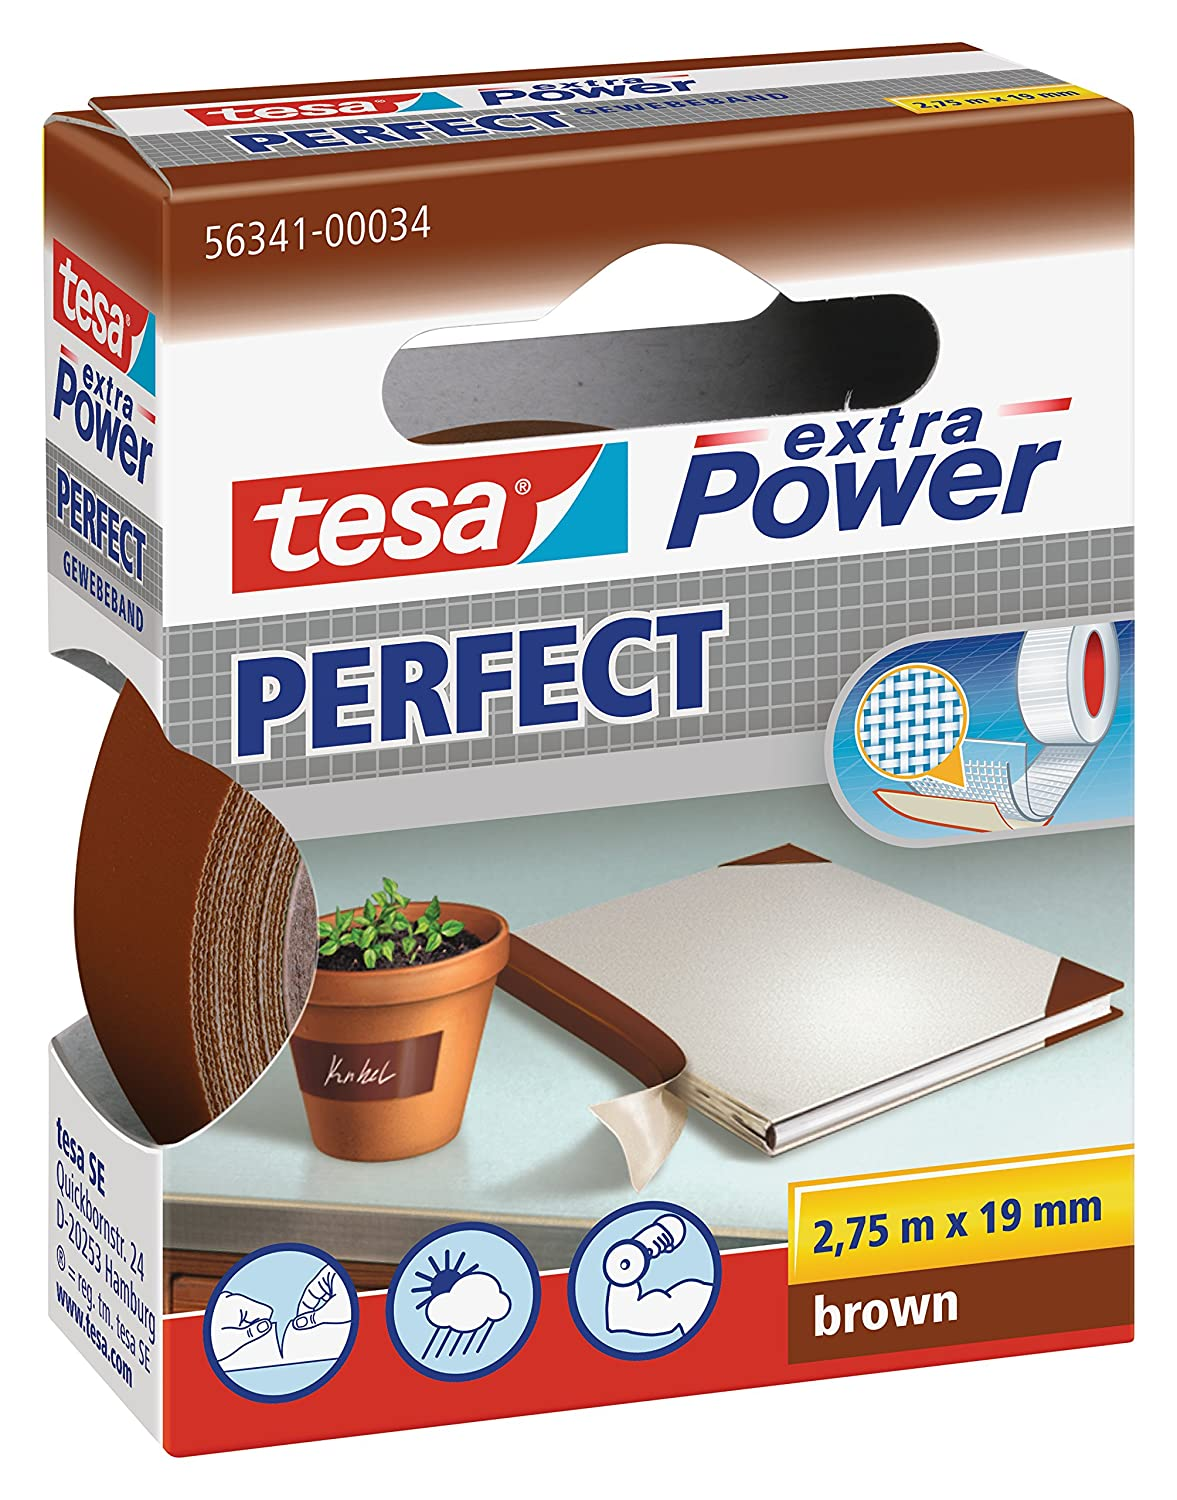 tesa extra Power / 563410003402 Bande adhésive Marron 19 mm x 2.75 m